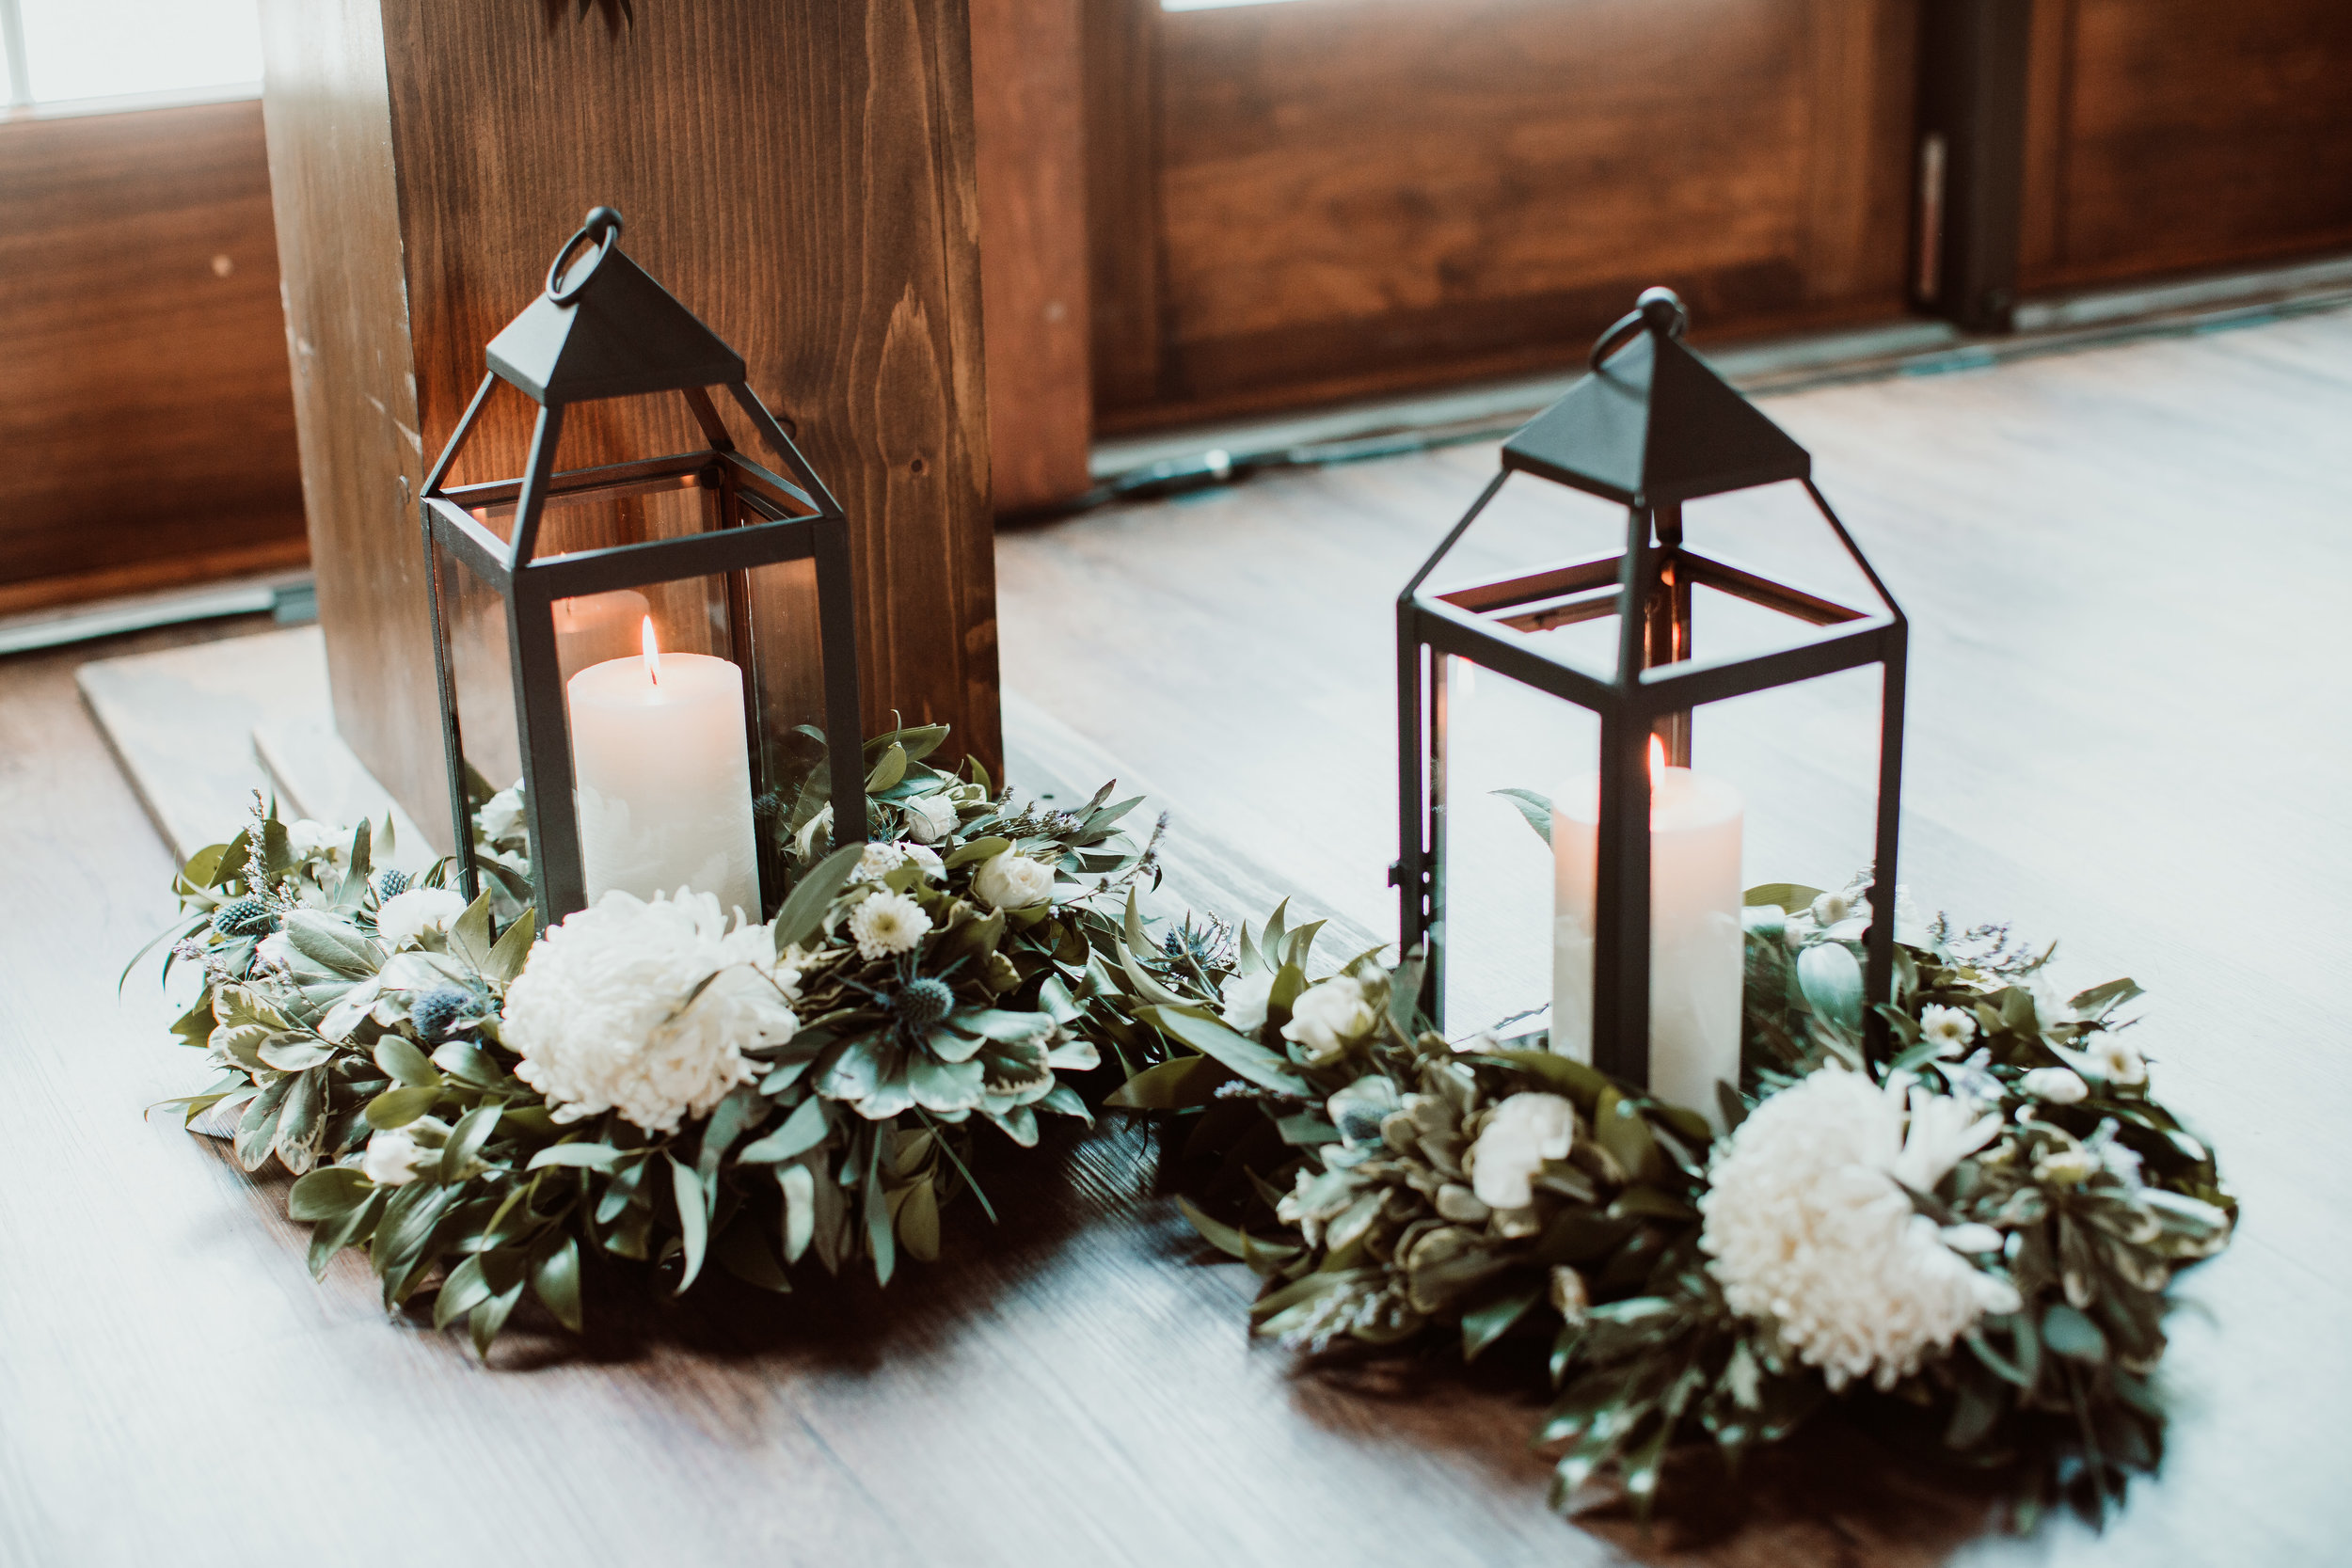 Lanterns with garland and flowers